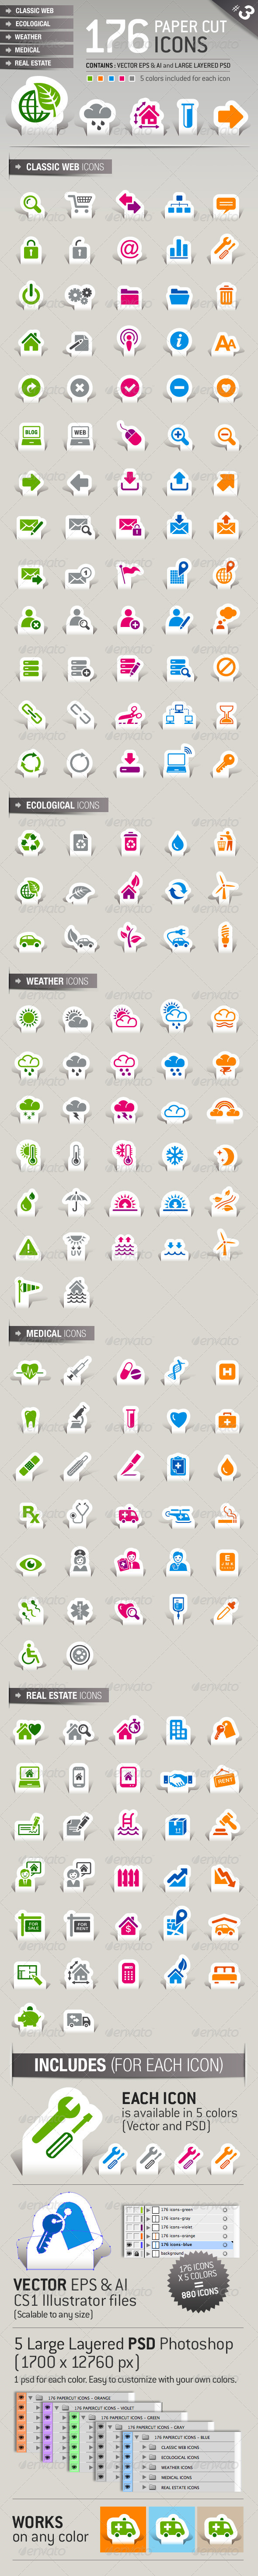 176 Papercut Icons - Business Icons